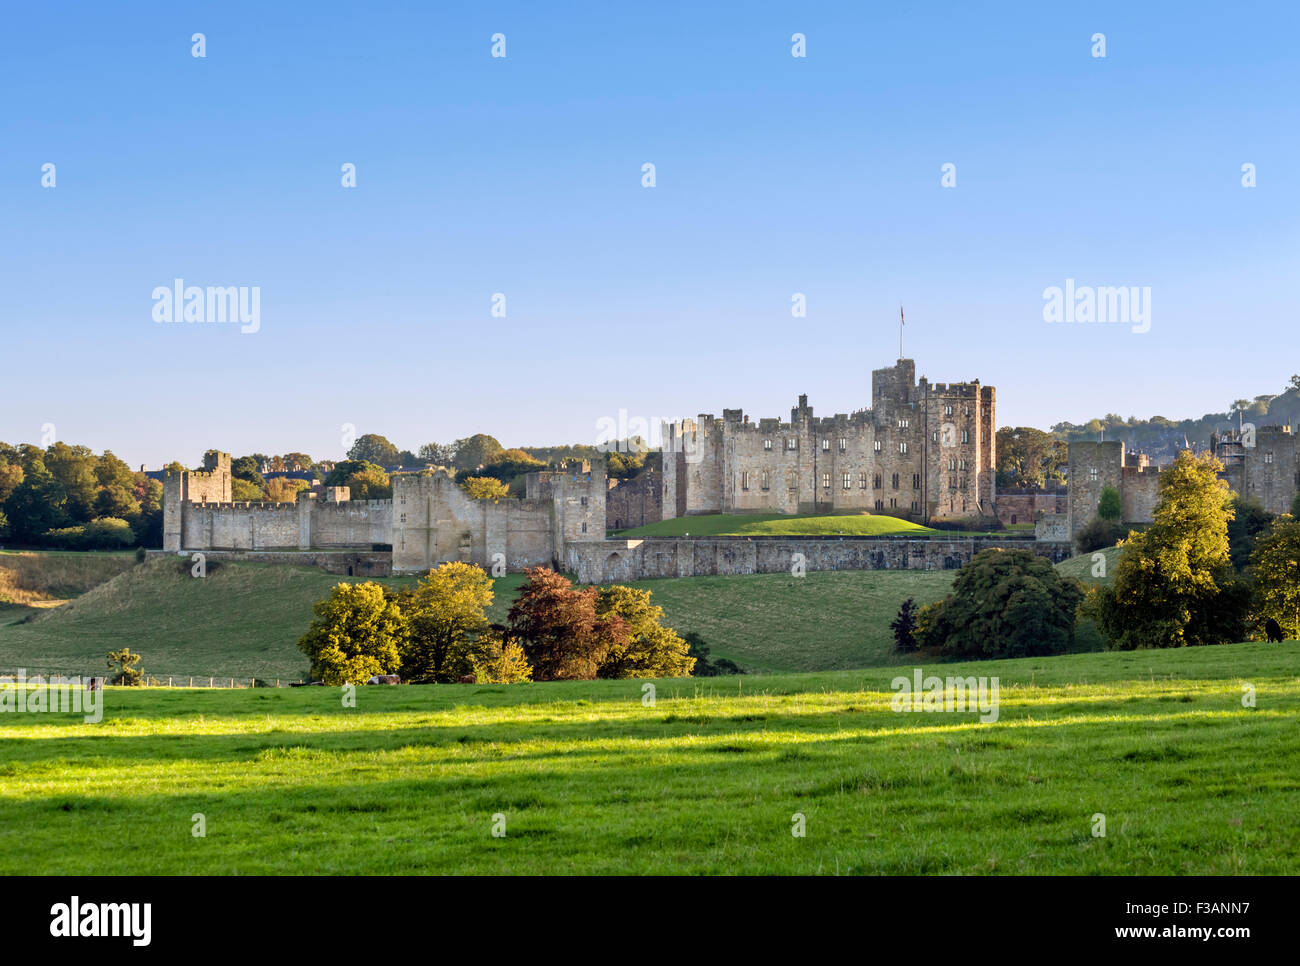 Alnwick Castle in the late afternoon autumn sunshine, Alnwick, Northumberland, England, UK - Stock Image